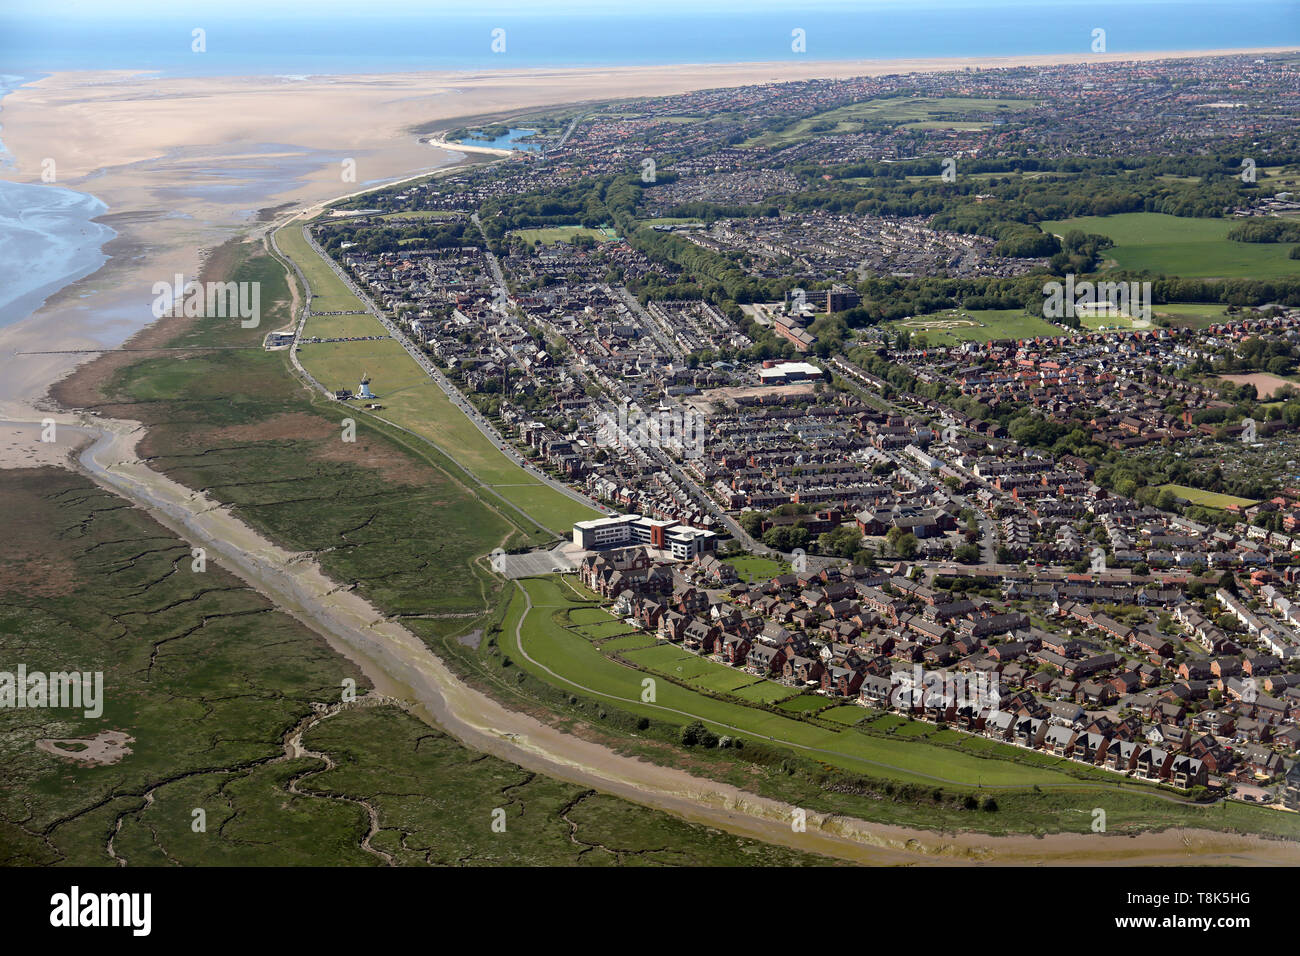 aerial view of Lytham & Lytham St Annes, a seaside resort on the Lancashire coast - Stock Image